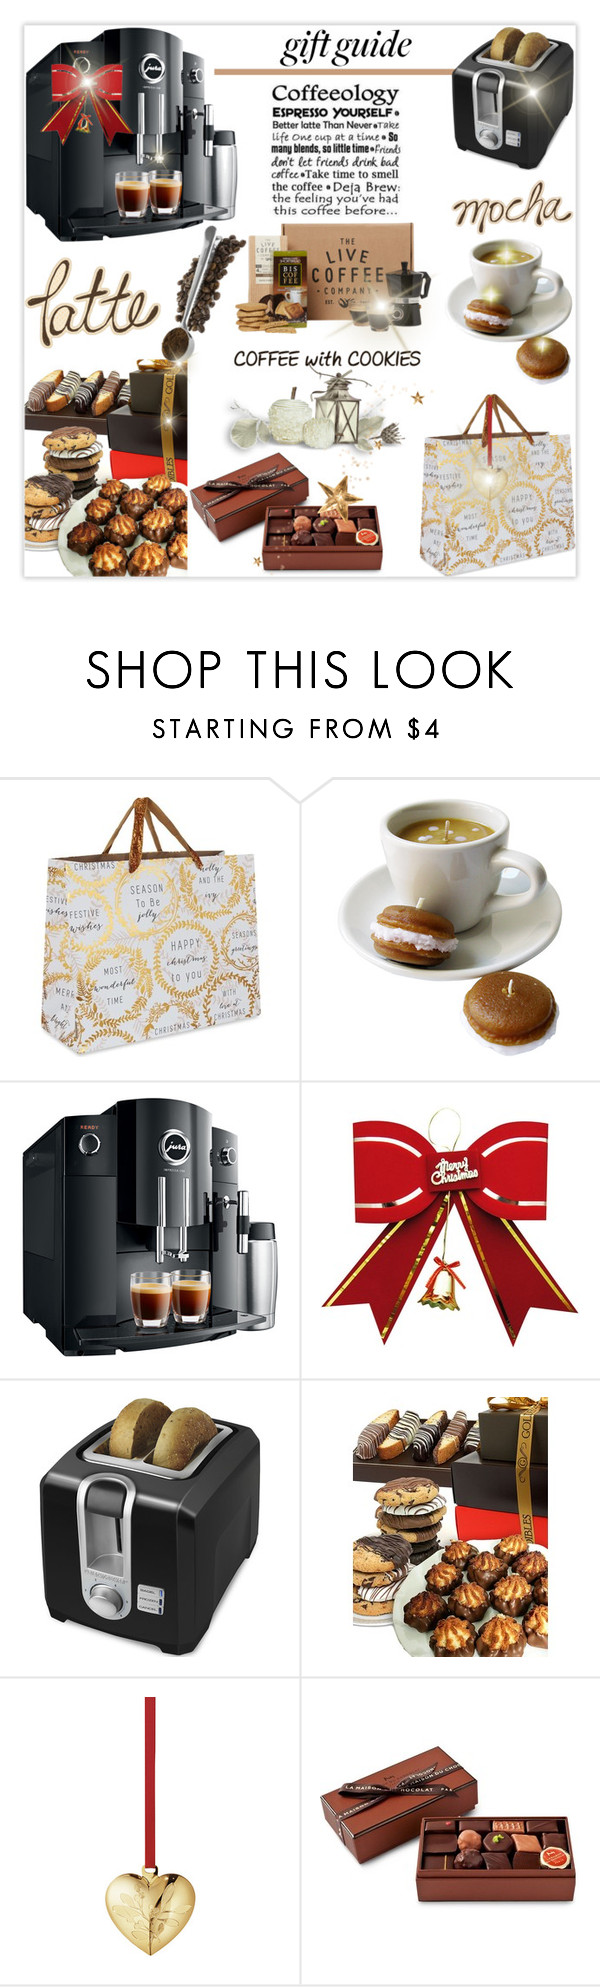 """""""Coffee loving Best Sister Friend"""" by mood-chic ❤ liked on Polyvore featuring interior, interiors, interior design, home, home decor, interior decorating, Deva Designs, Jura, Black & Decker and Golden Edibles"""